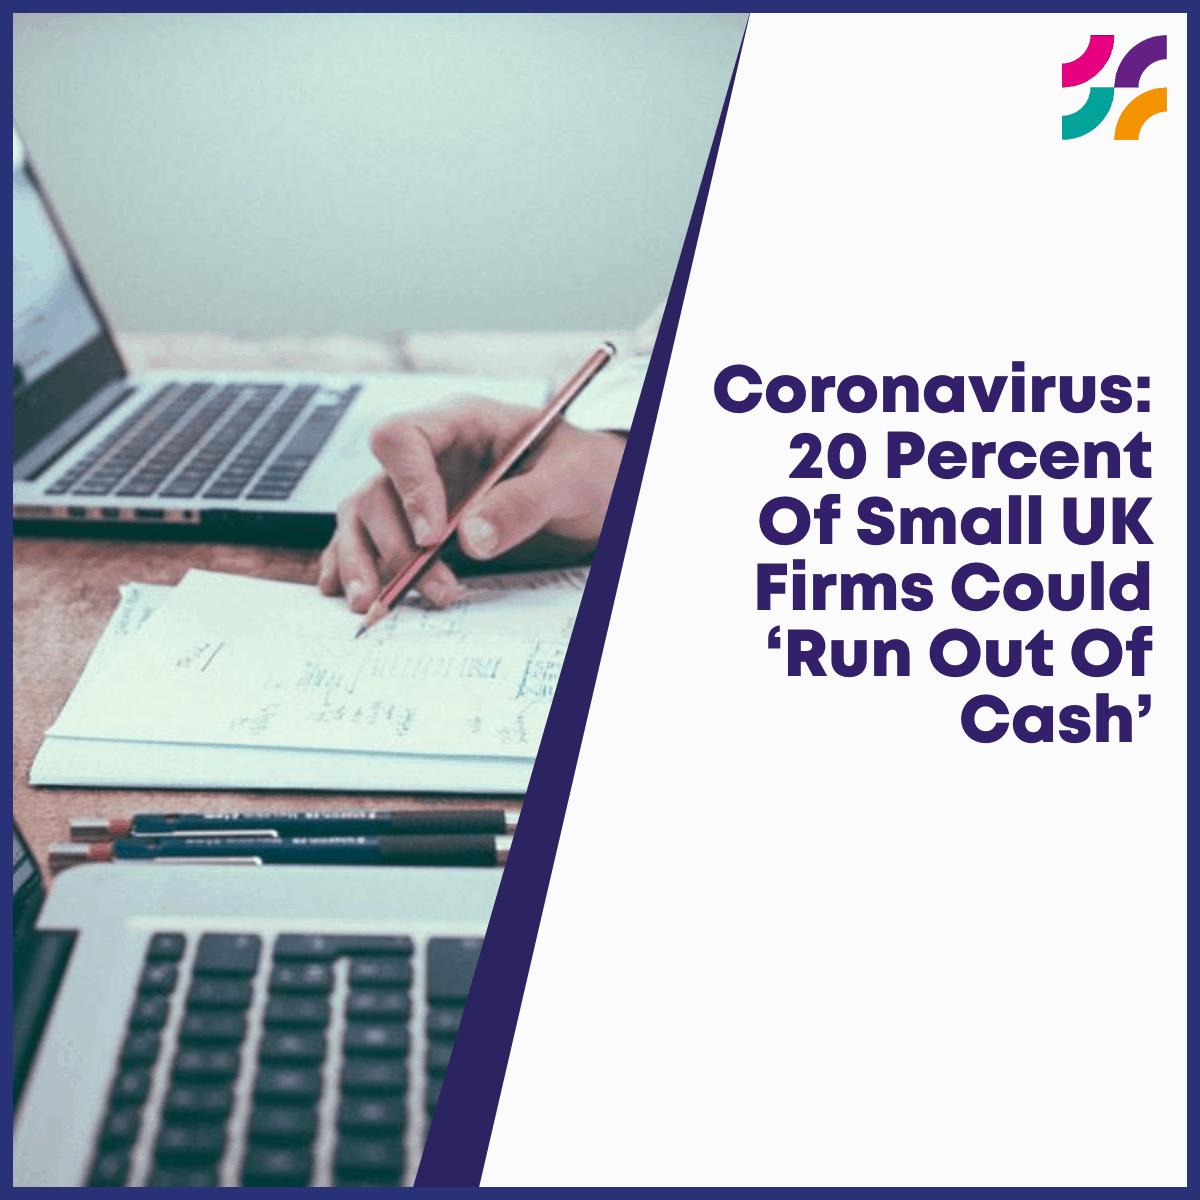 CENTURY 1200x1200 layout355 1fdsdq8 - Coronavirus: 20 Percent Of Small UK Firms Could 'Run Out Of Cash'